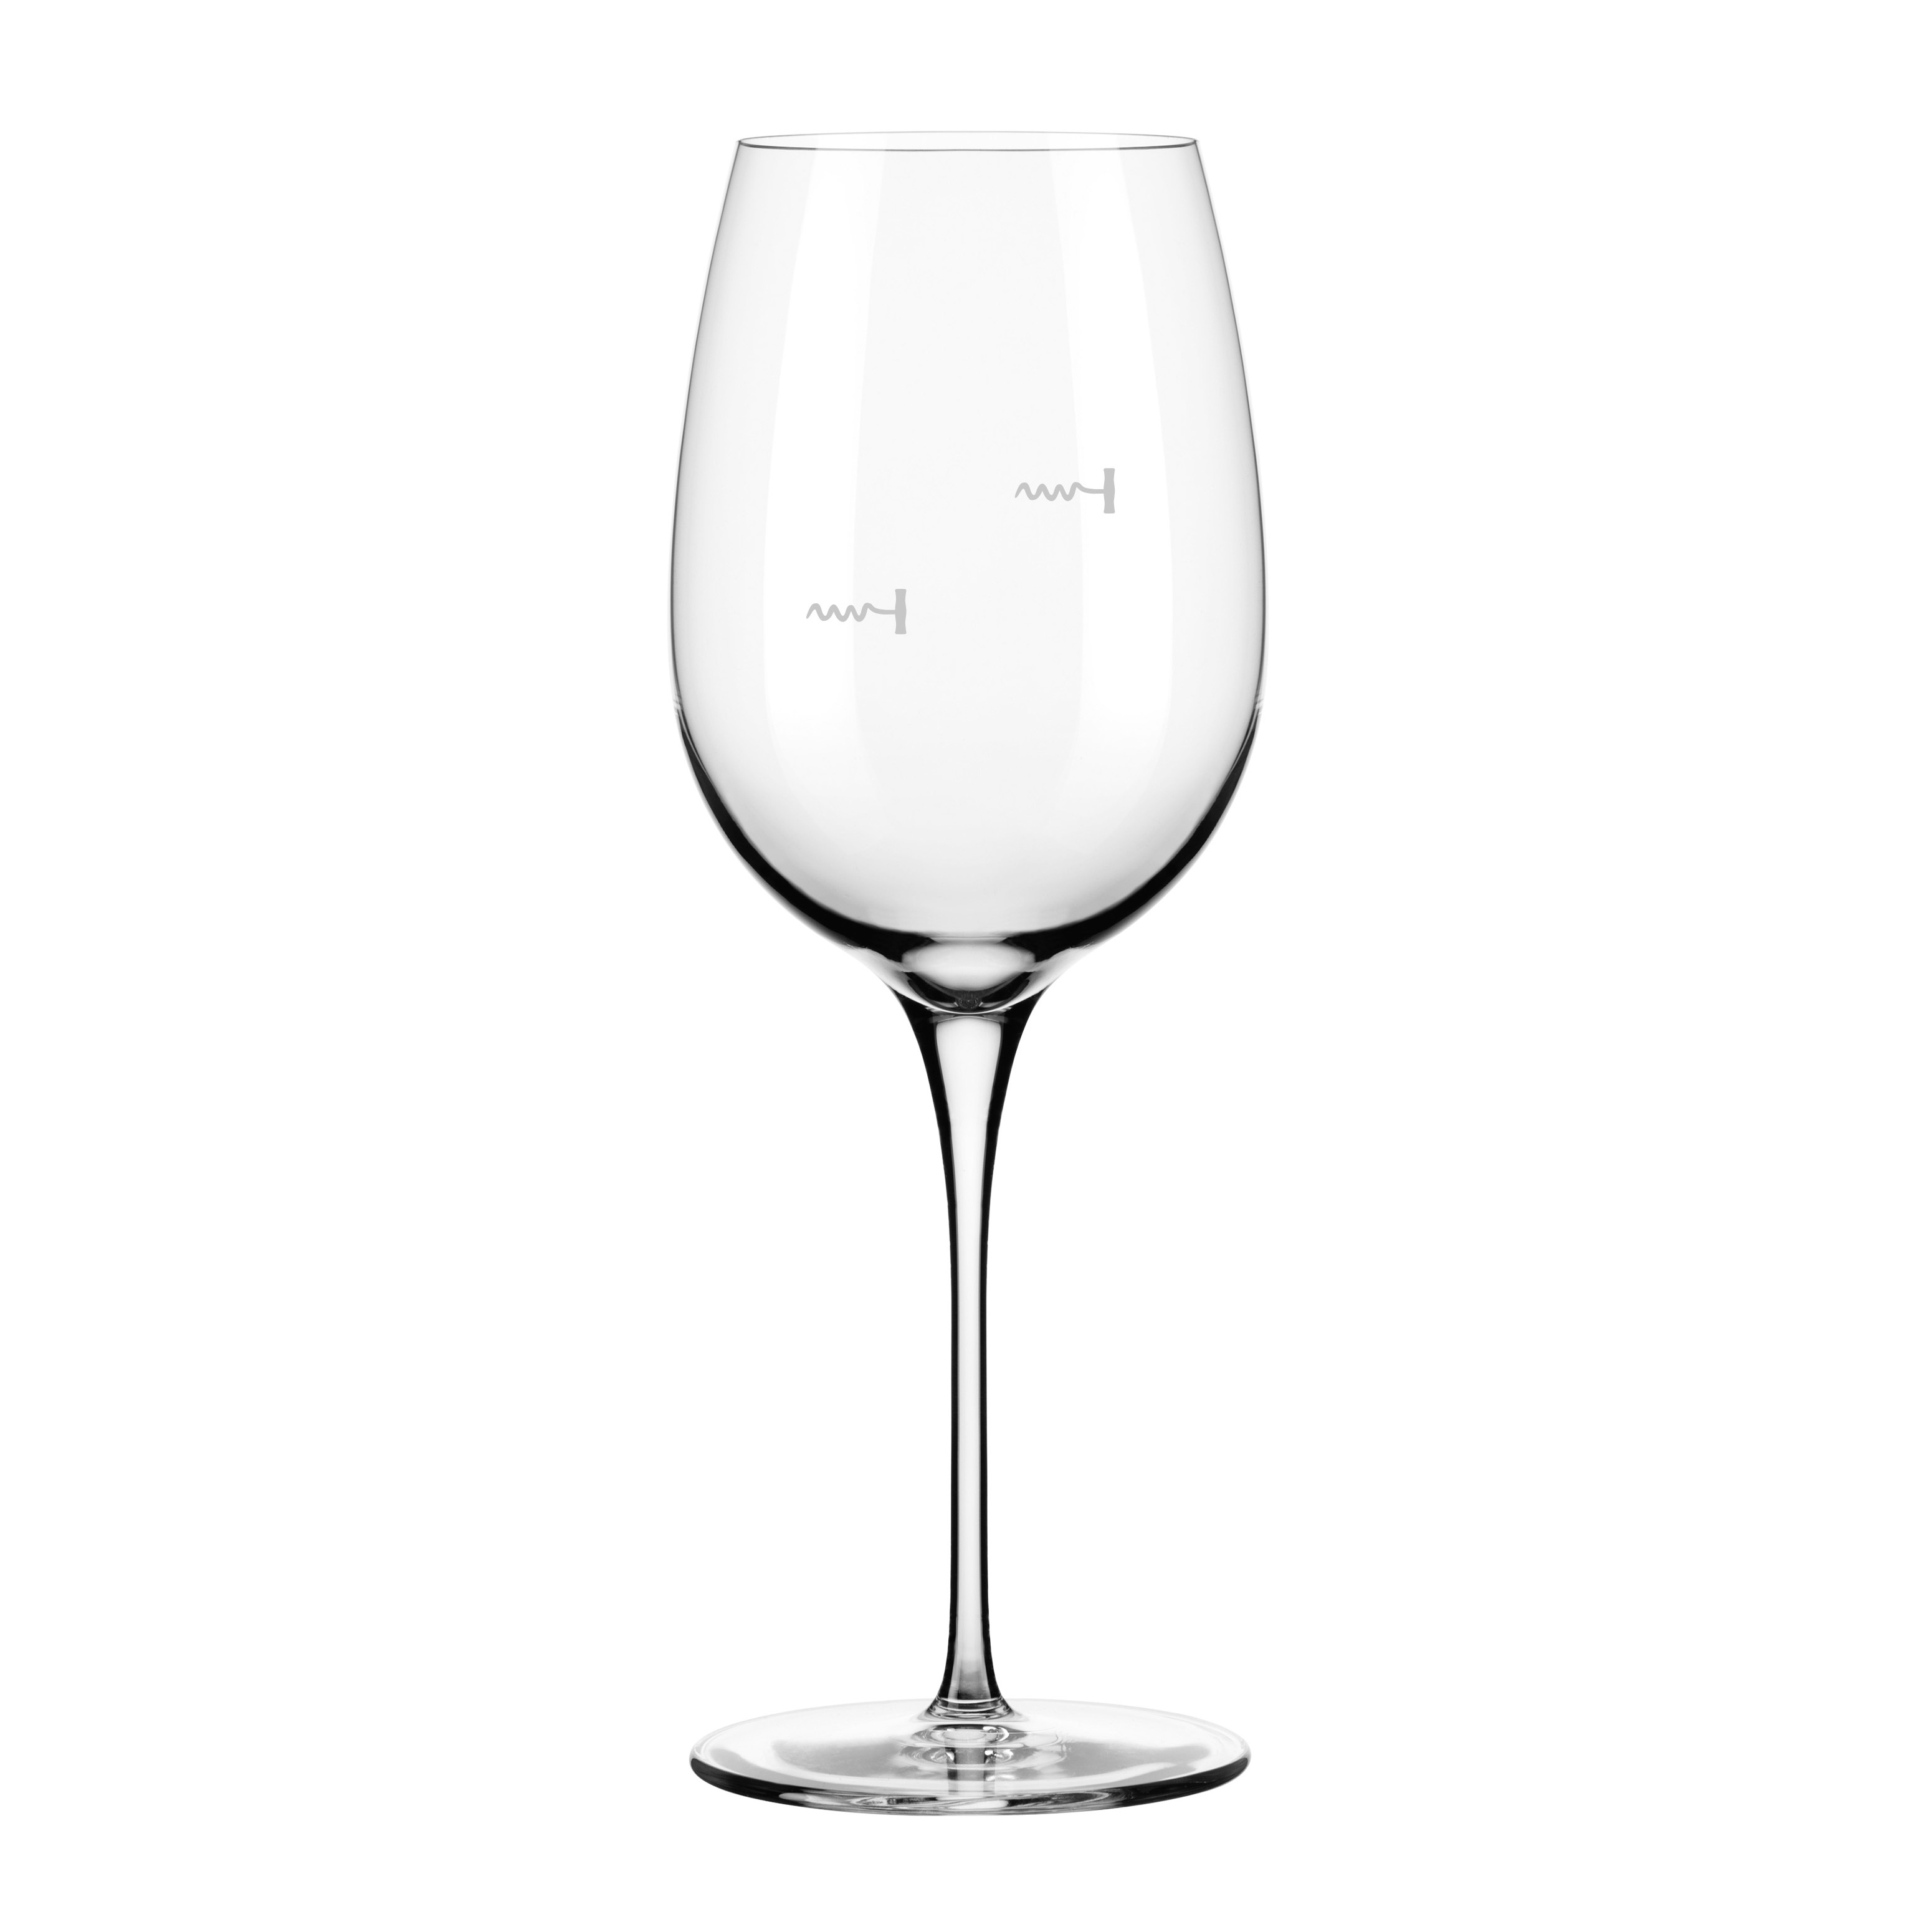 Libbey Glass 9123/U226A glass, wine